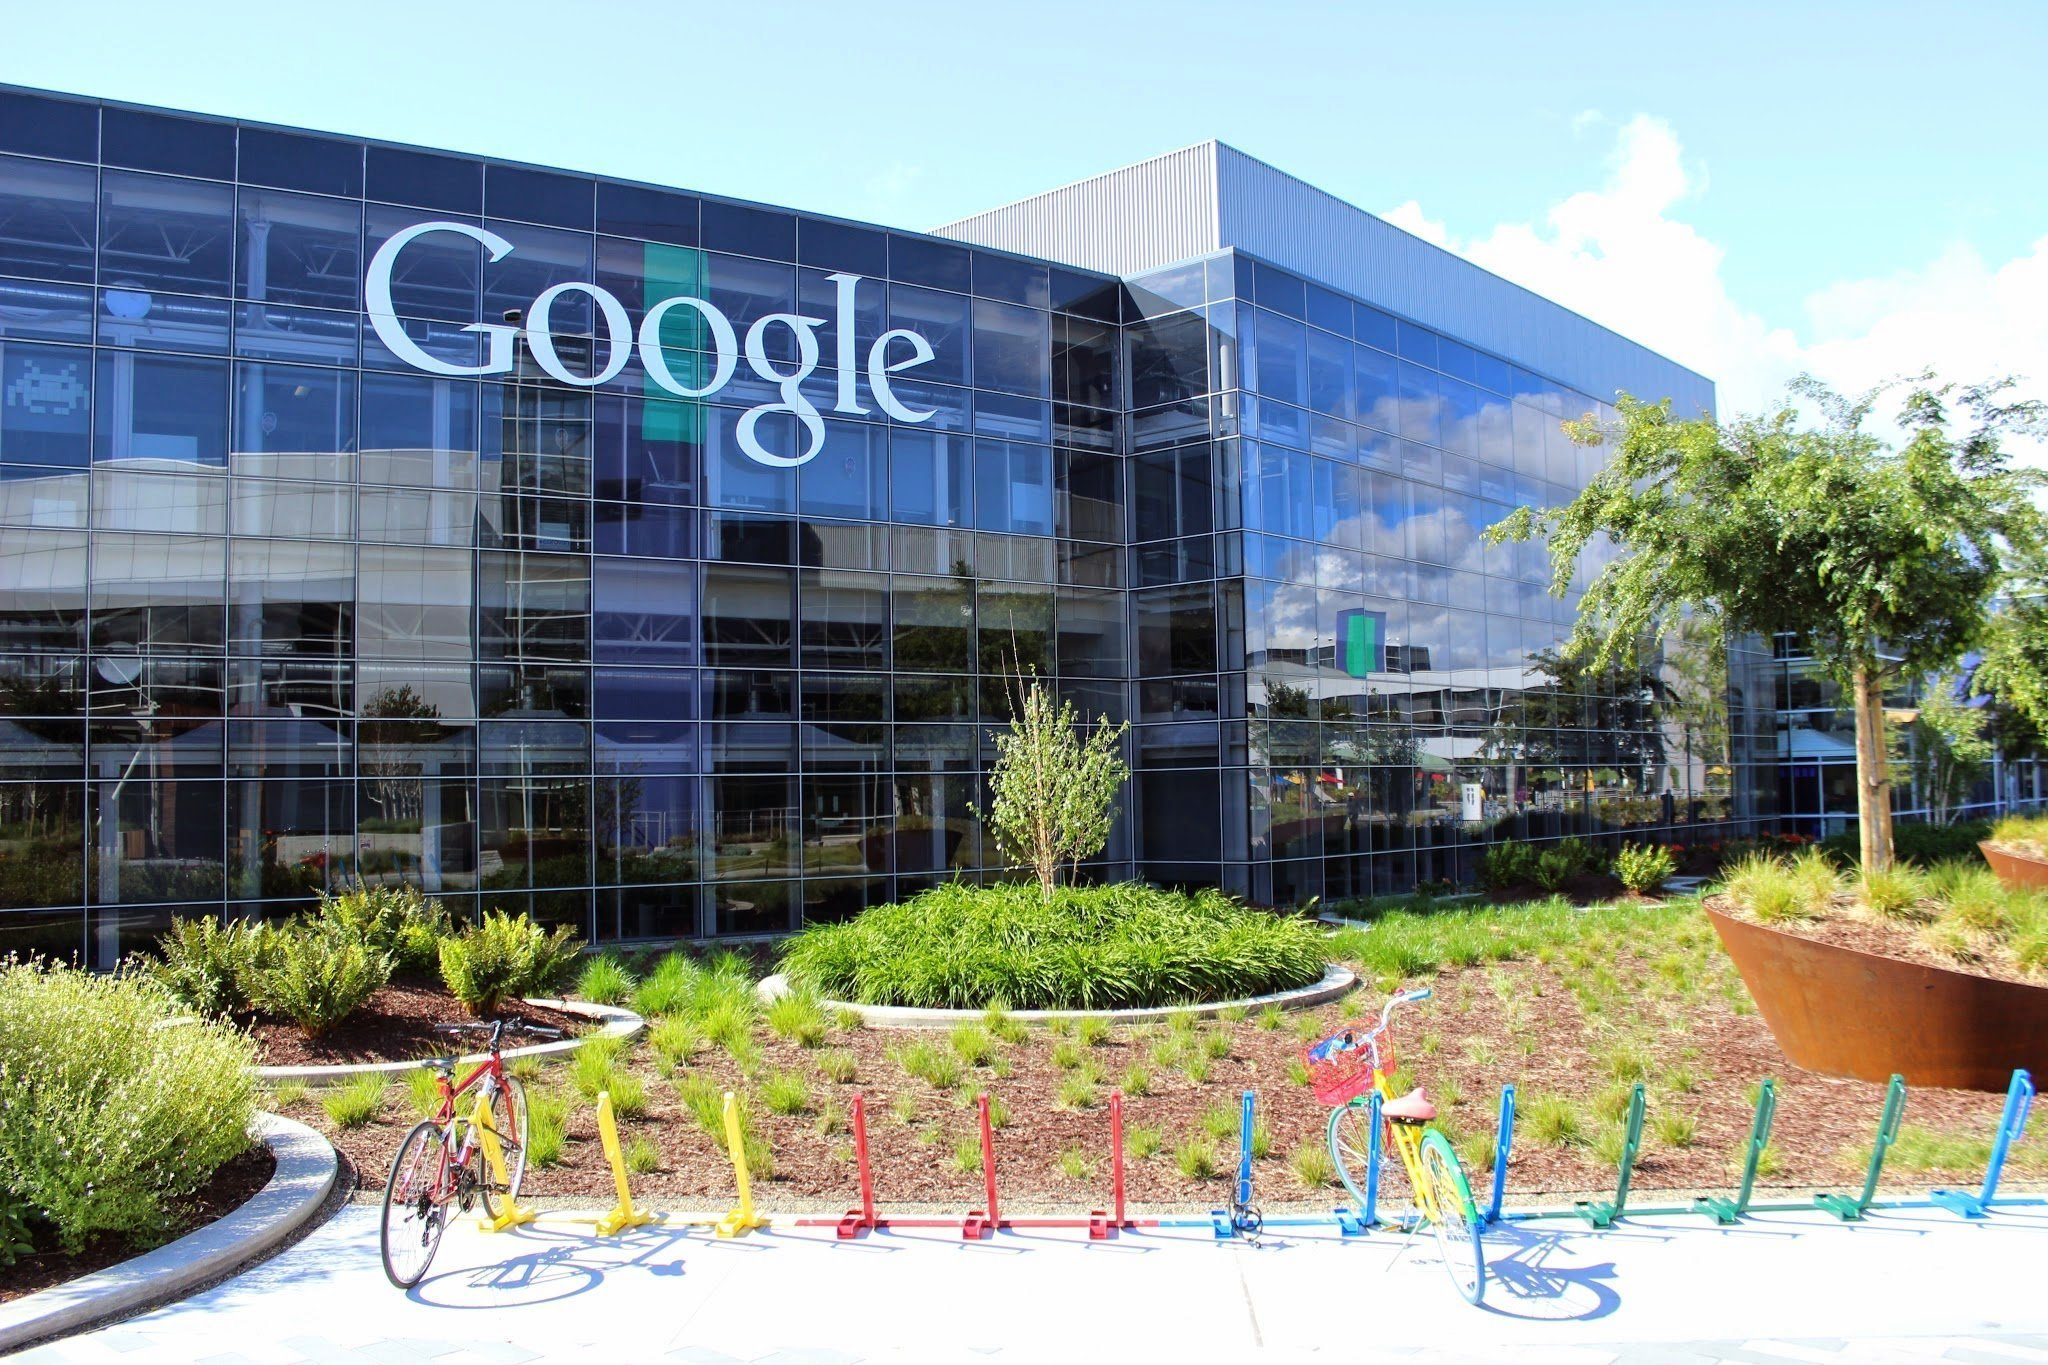 Google - Hauptquartier in Mountain View